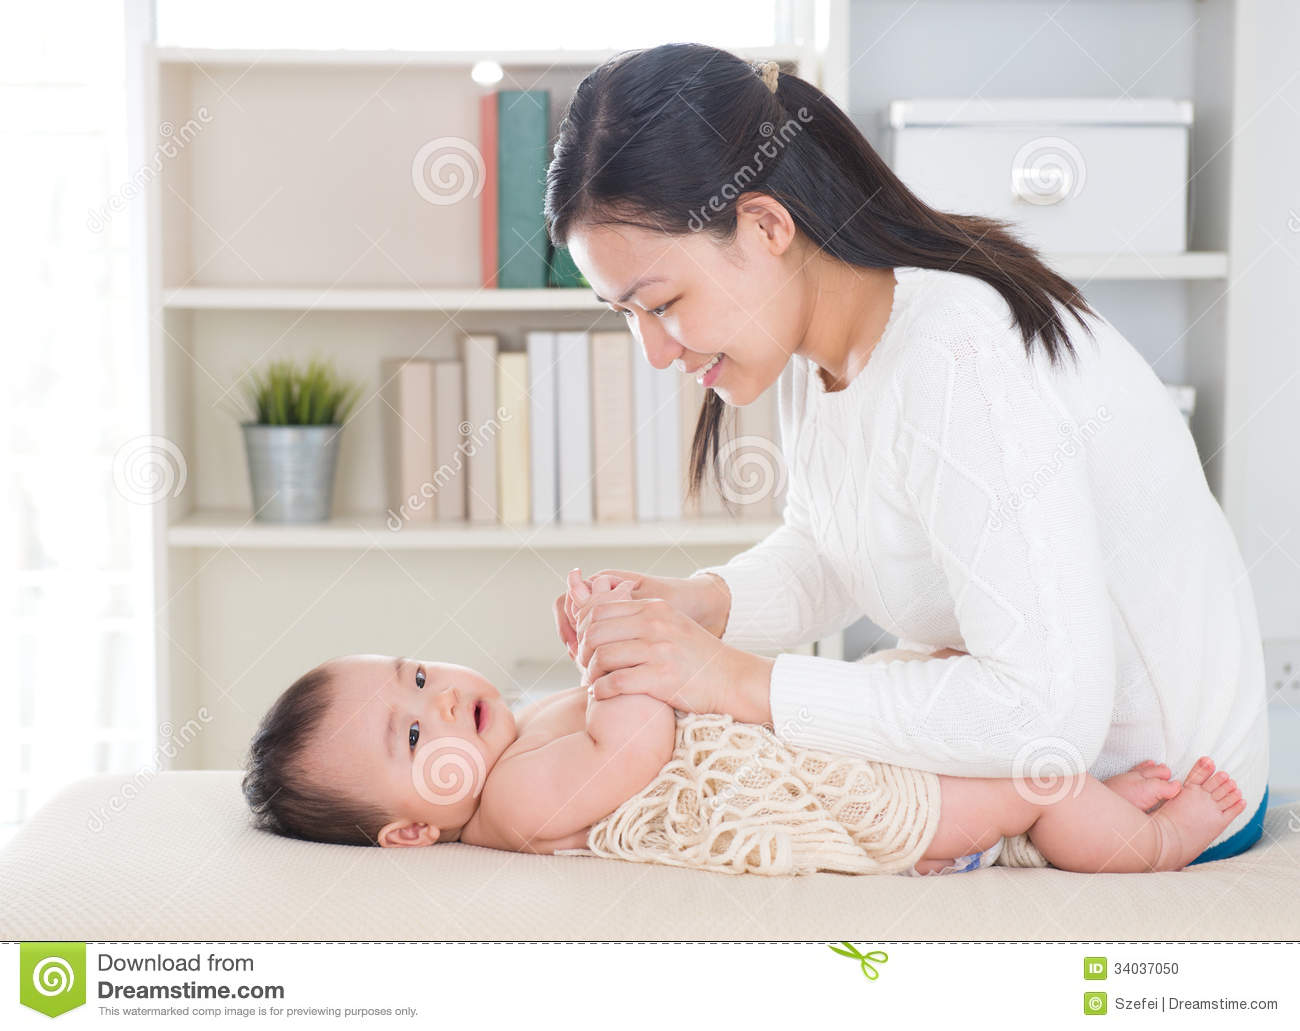 Baby massage. Asian mother massaging baby hands at home.